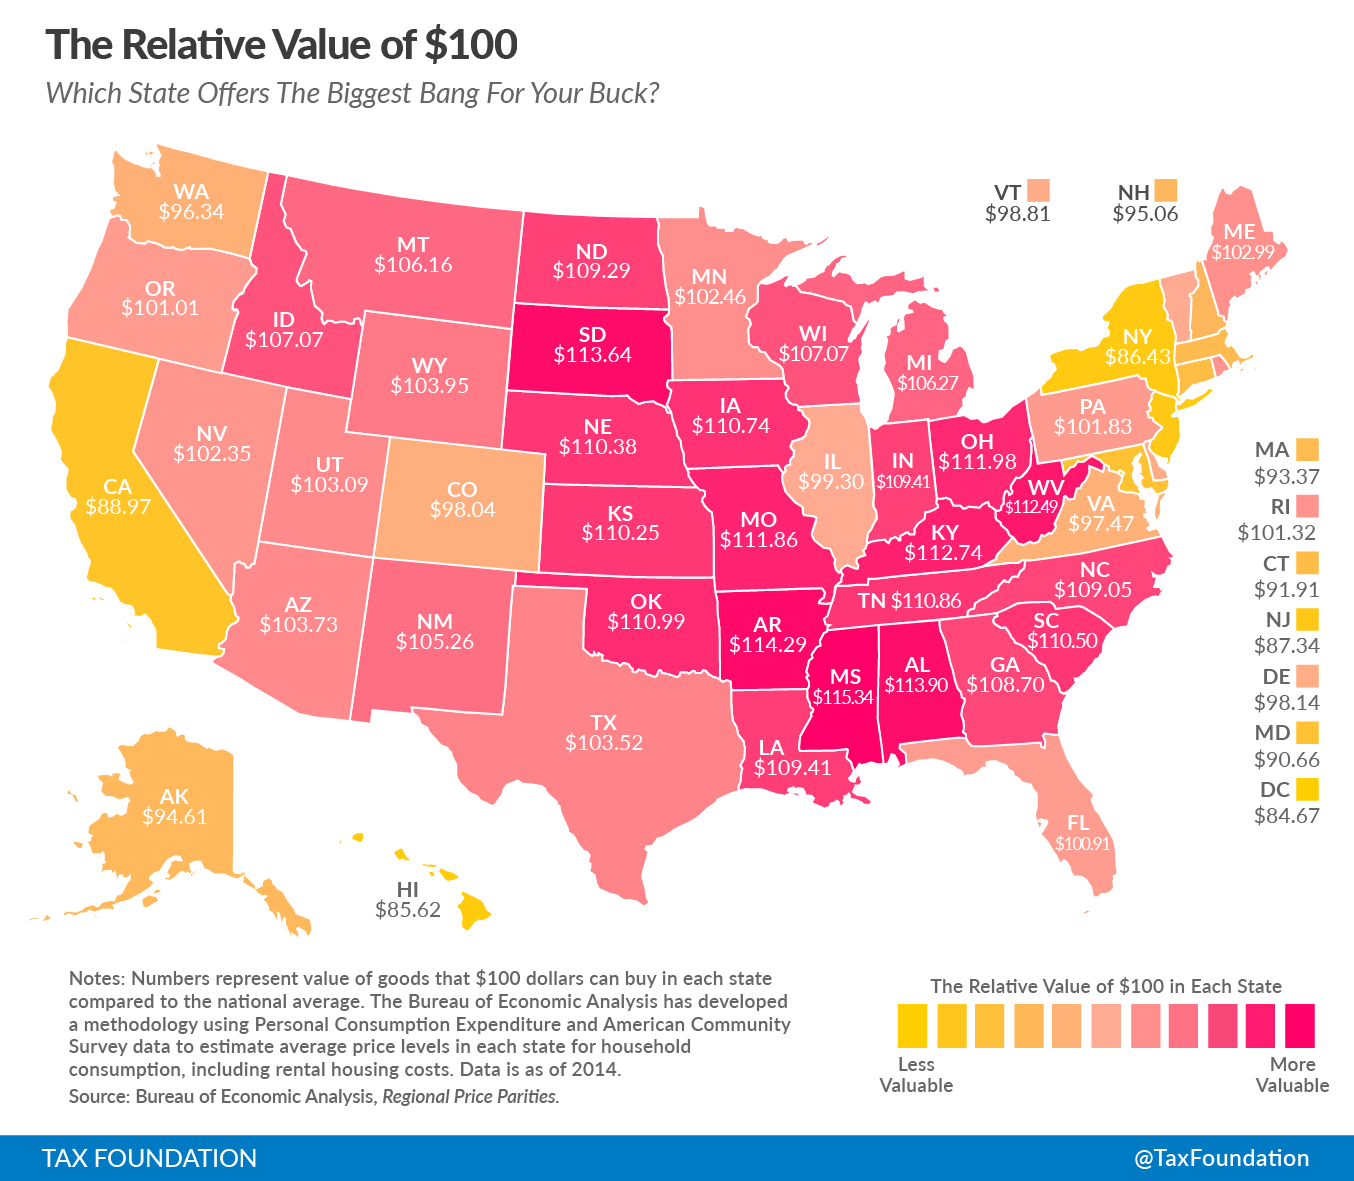 relative value of $100 in different states